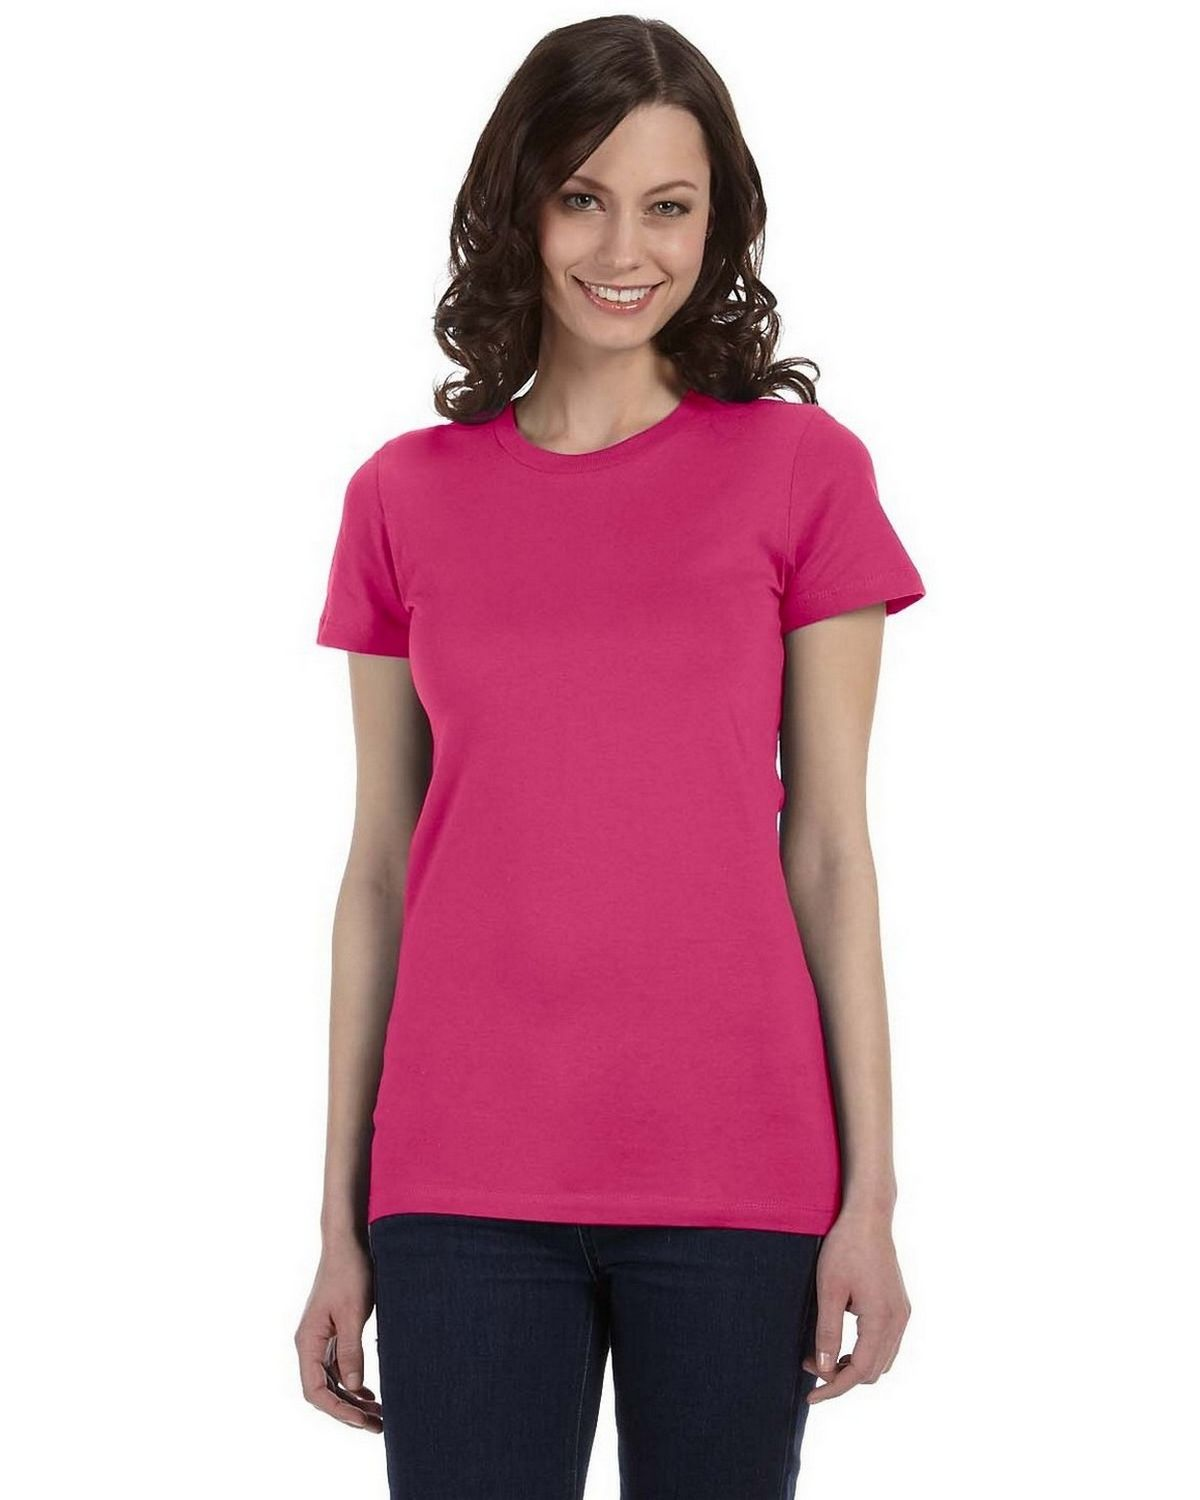 Bella + Canvas 6004 Ladies The Favorite T-Shirt - Berry - L 6004